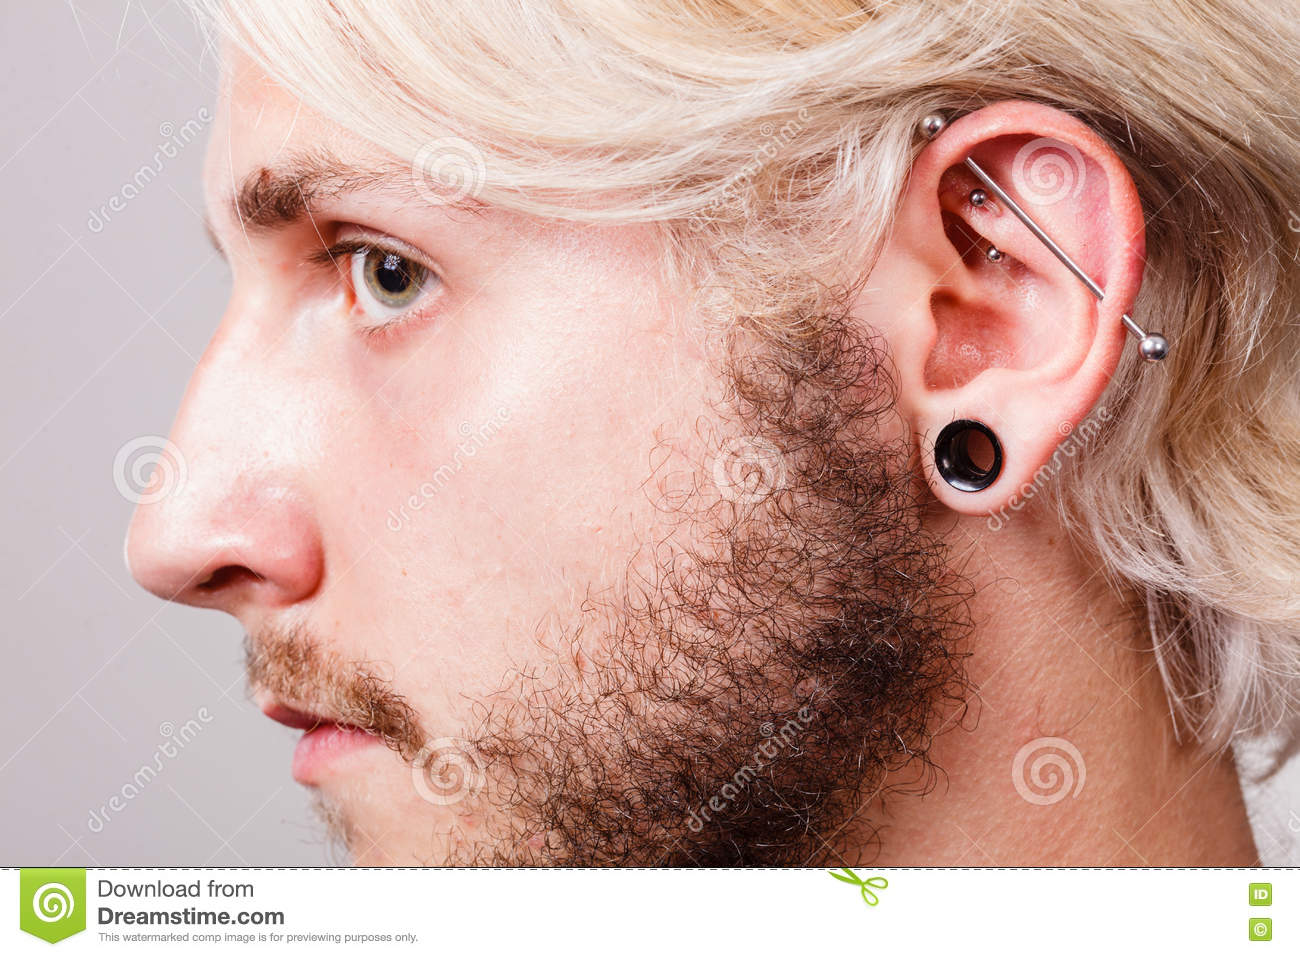 6cae52c60 Pierced Man Ear, Black Plug Tunnel, Industrial And Rook Stock Photo ...